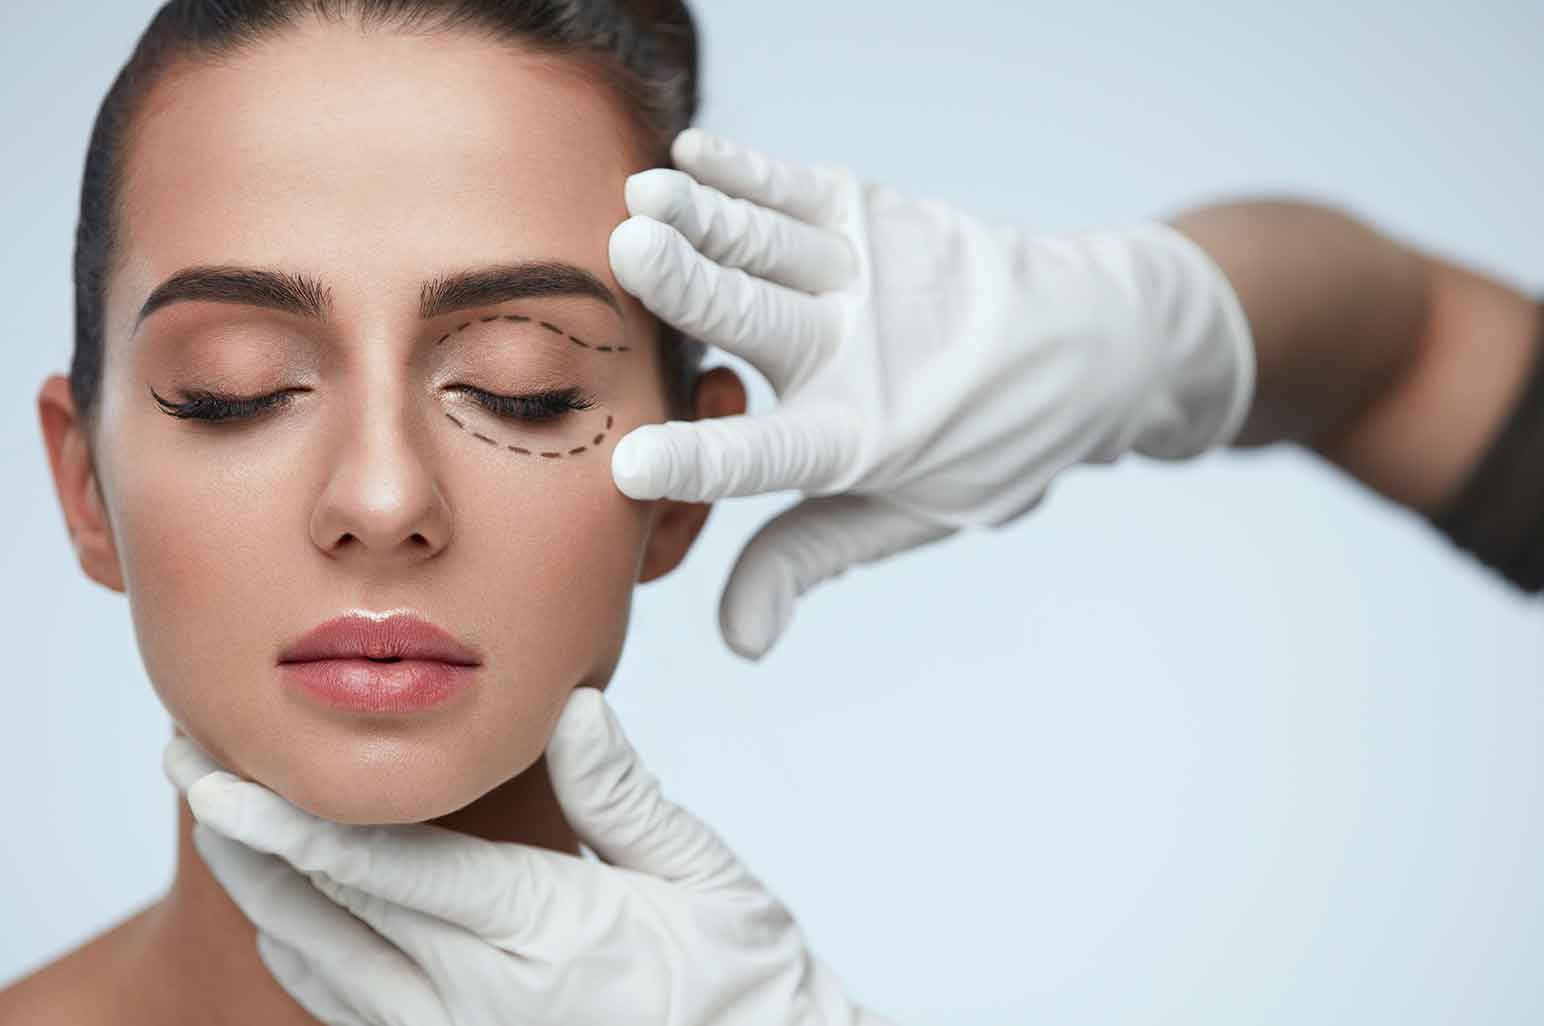 What to know about facial plastic surgery